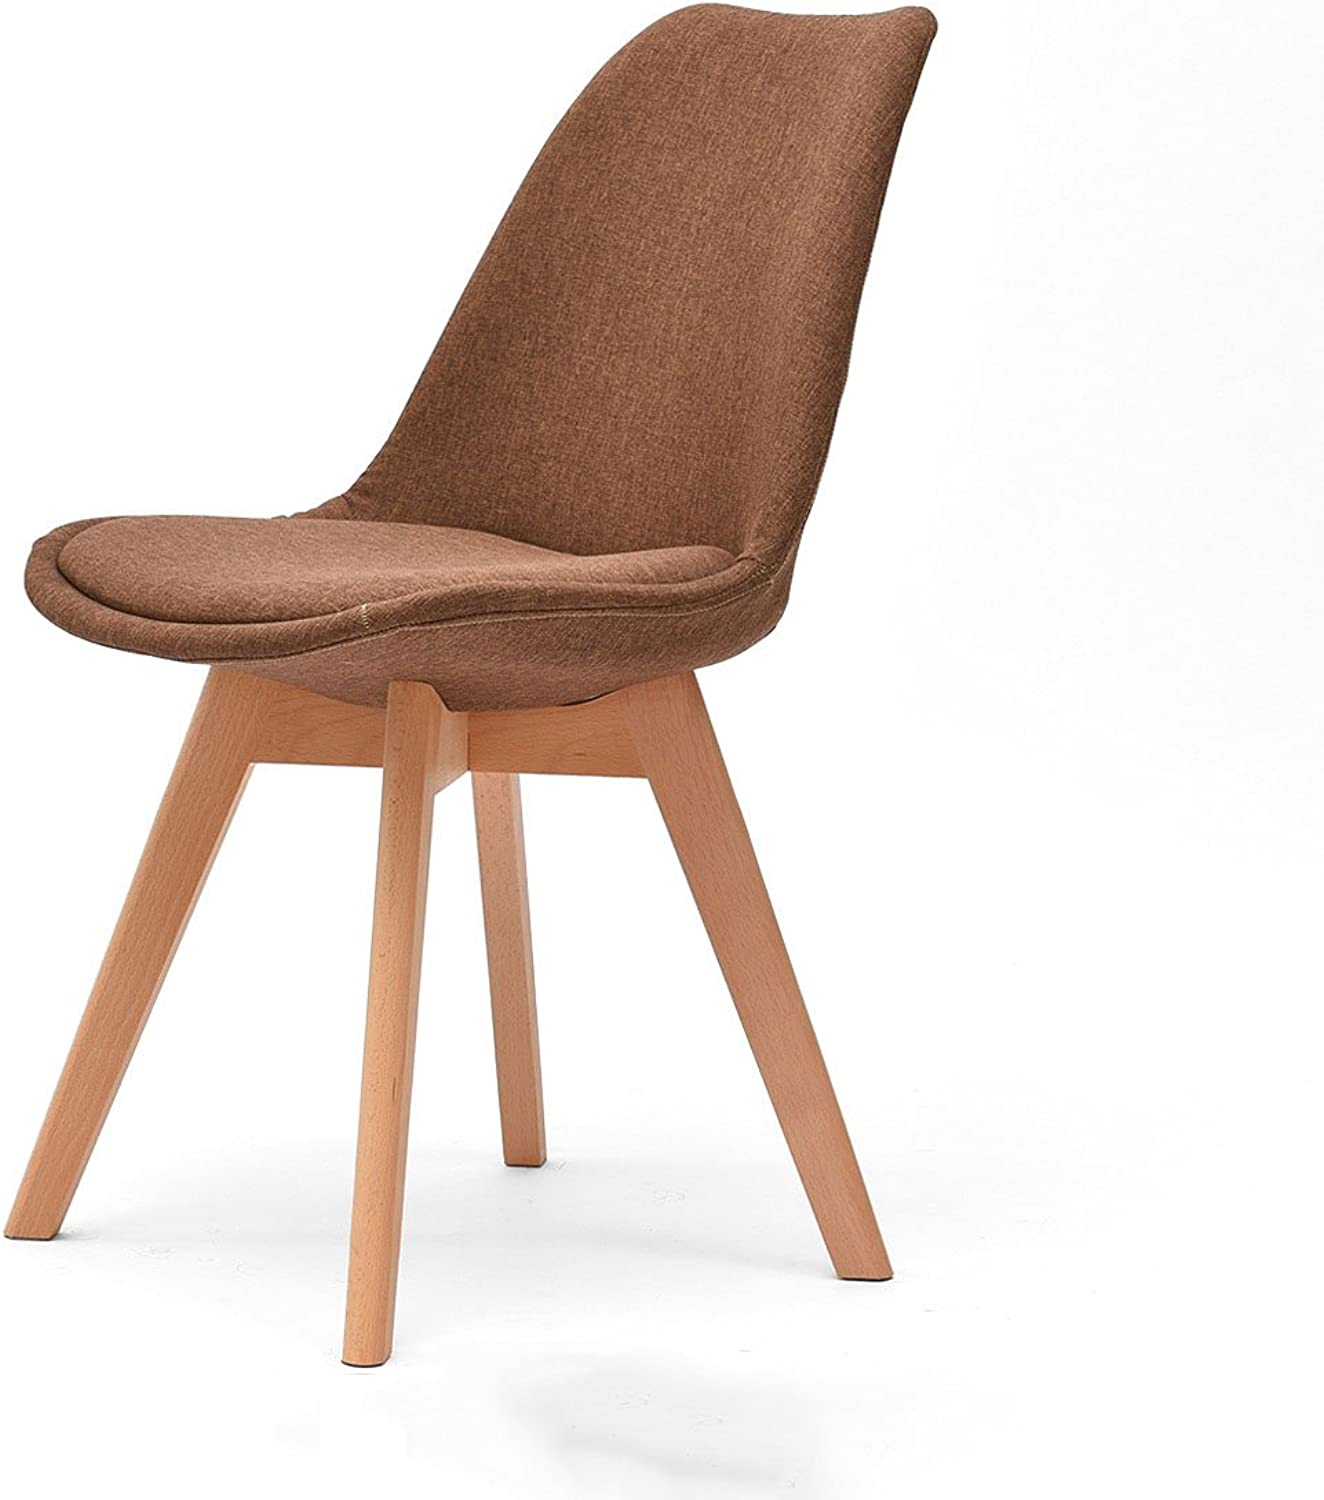 CQOZ Solid Wood Desk Chair Simple and Modern Backrest Household Dining Chair Northern Europe Creative Office Chair 43 × 43 × 83cm Sofa Stool (color    3)